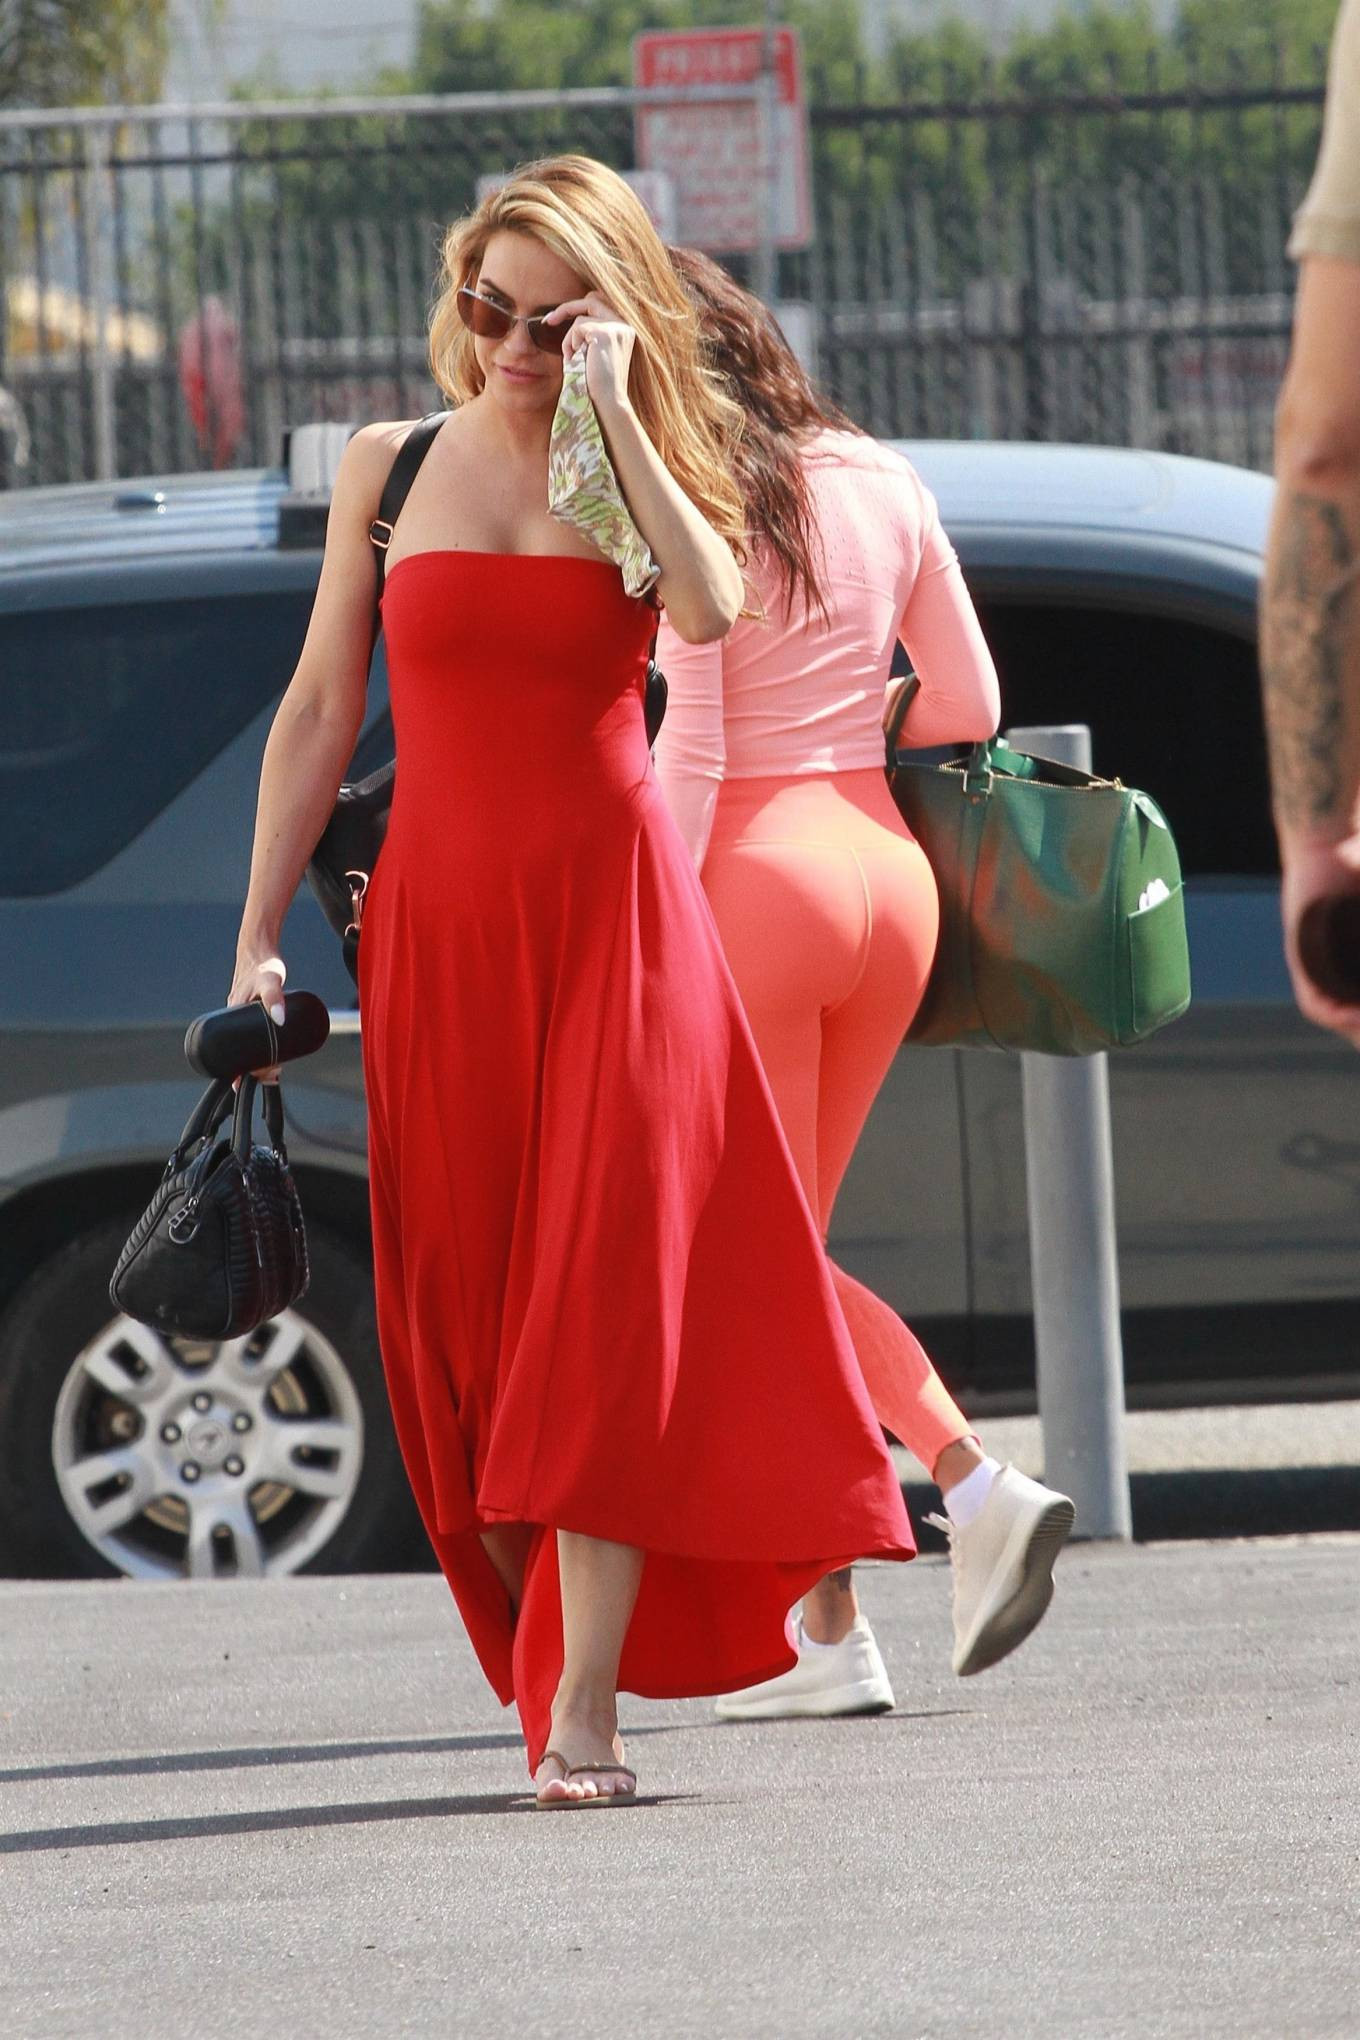 Chrishell Stause - In a red dress at DWTS studio in Los Angeles